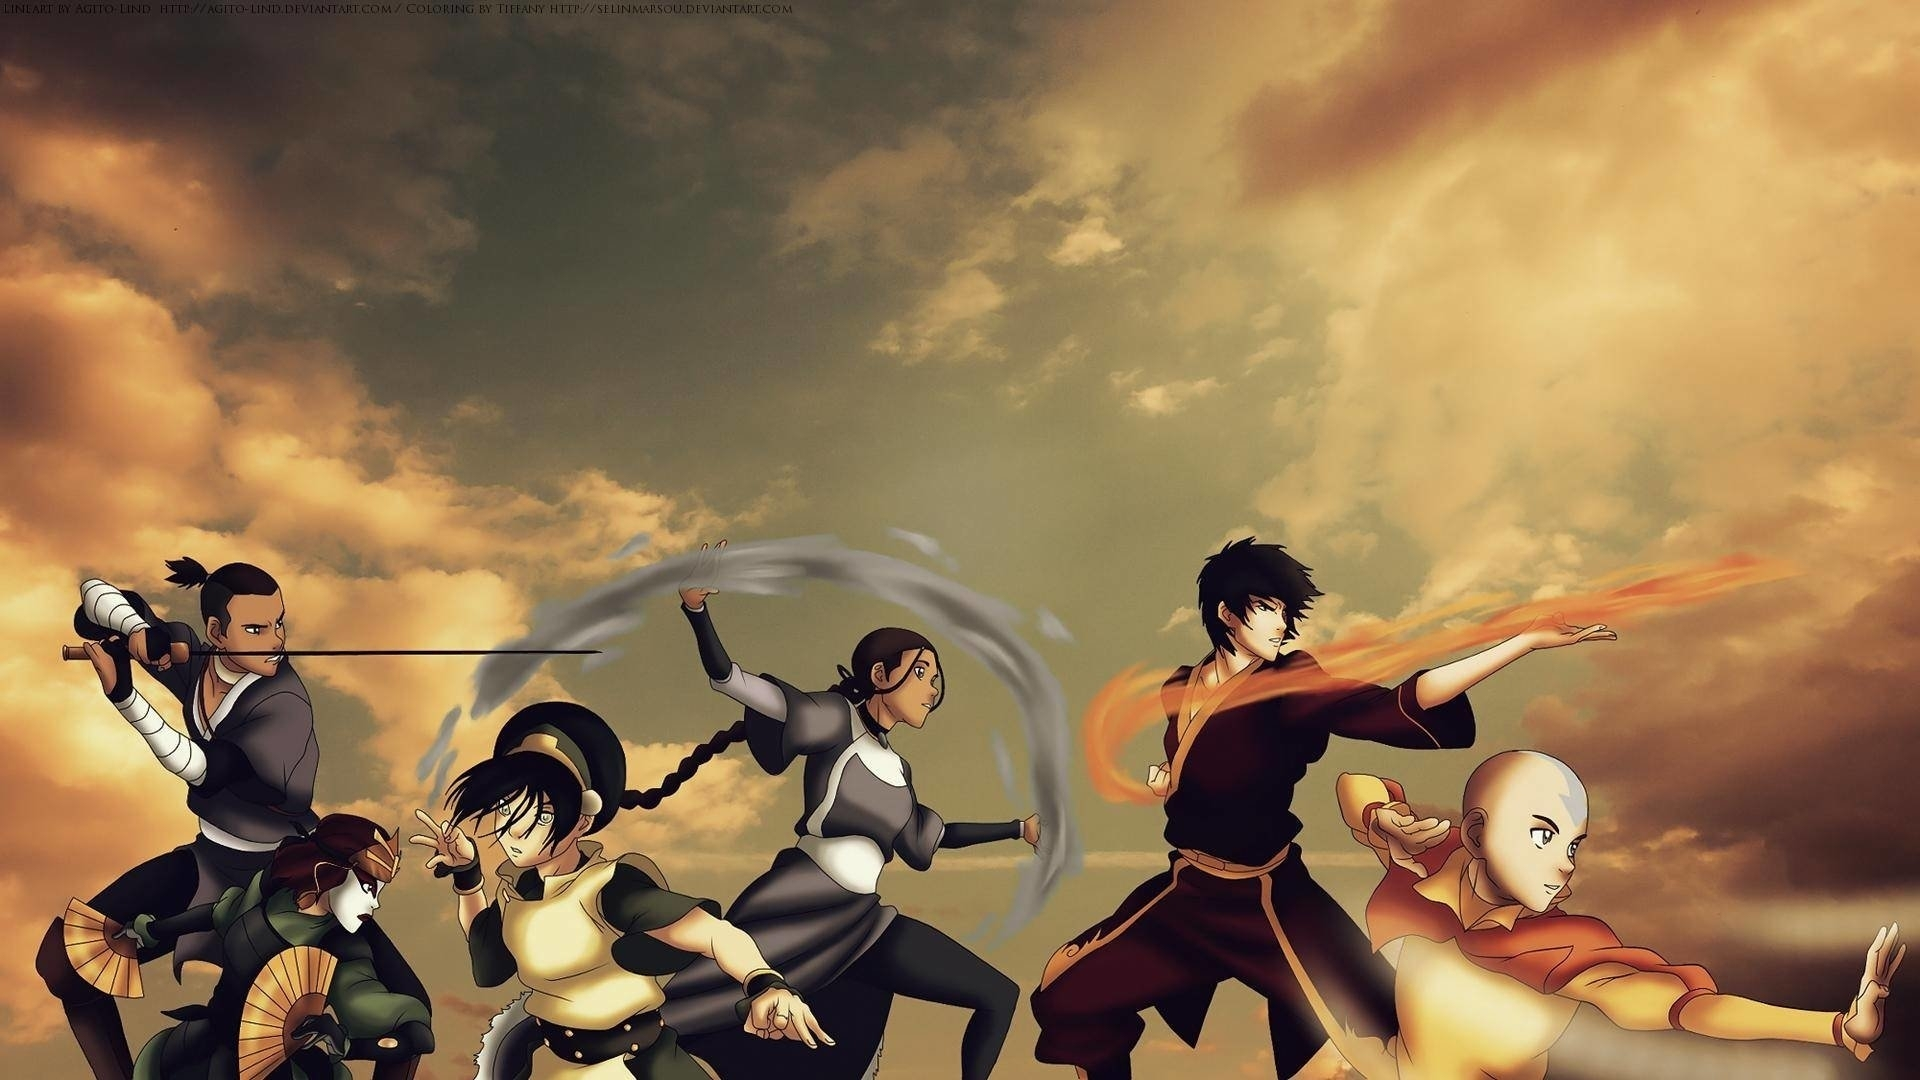 116 avatar: the last airbender hd wallpapers | background images